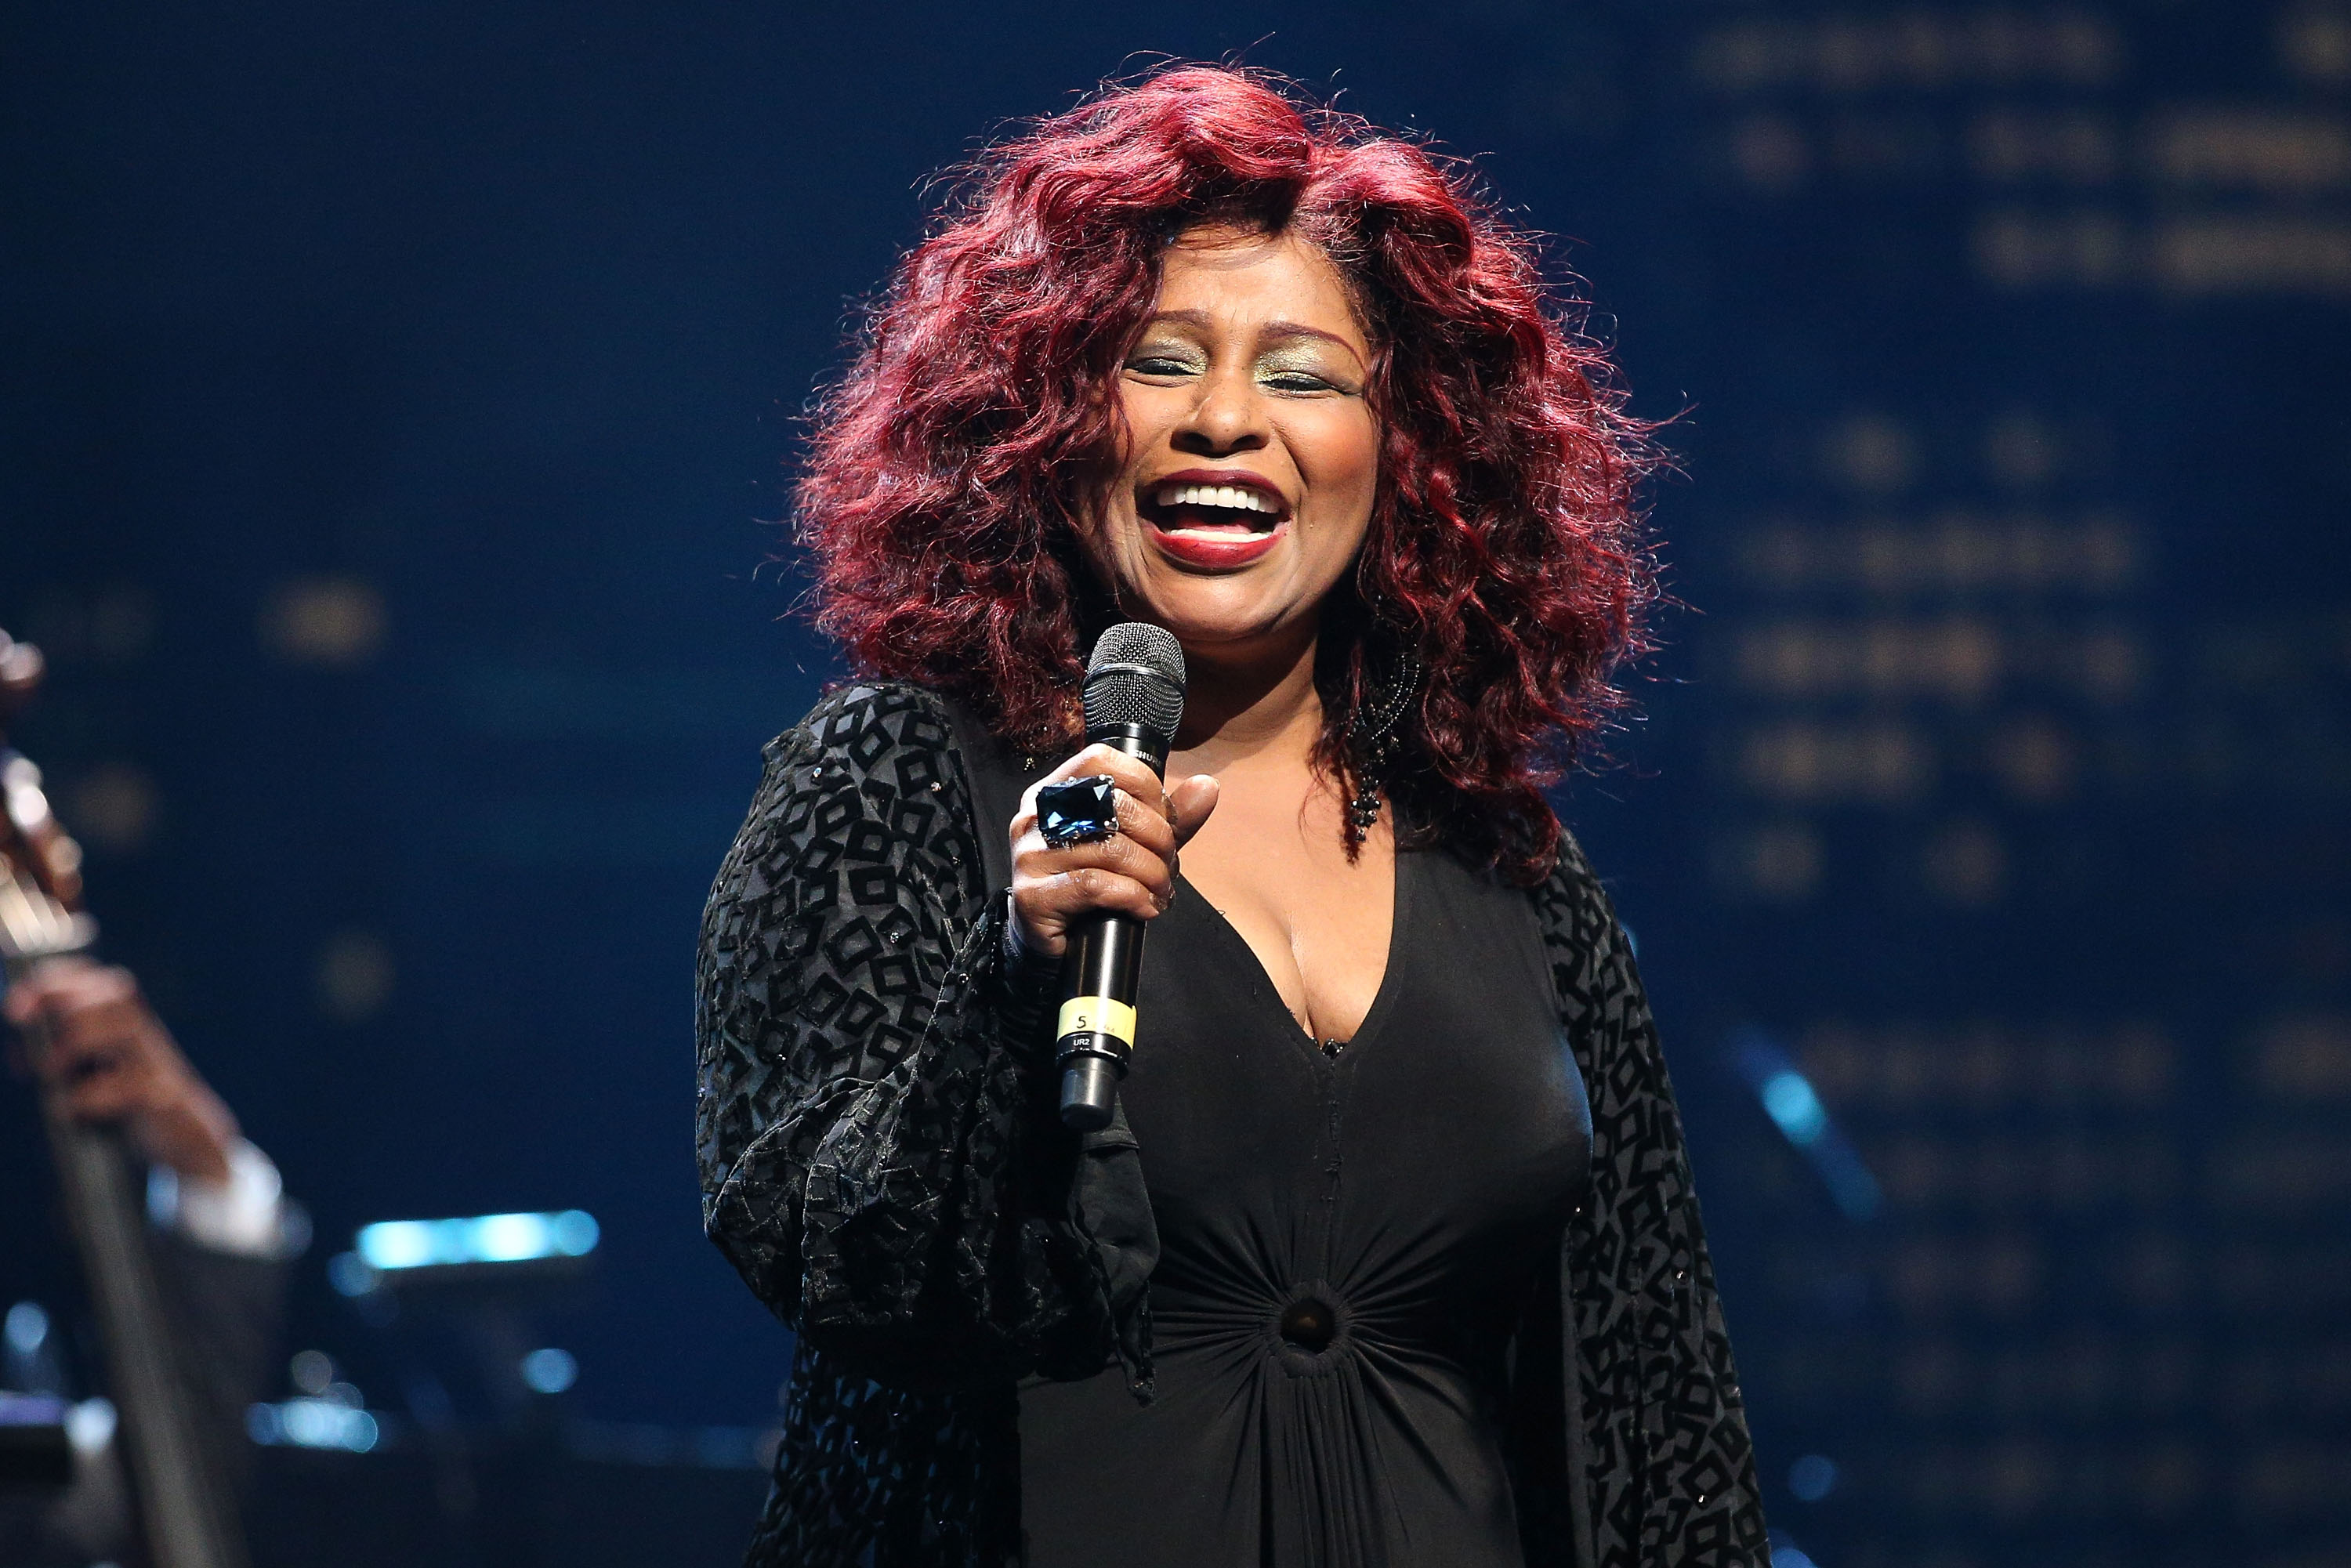 Chaka Khan misses out on being inducted for the third time this year. She was previously nominated in 2011 along with Rufus and again in 2015. (Photo: Getty Images)